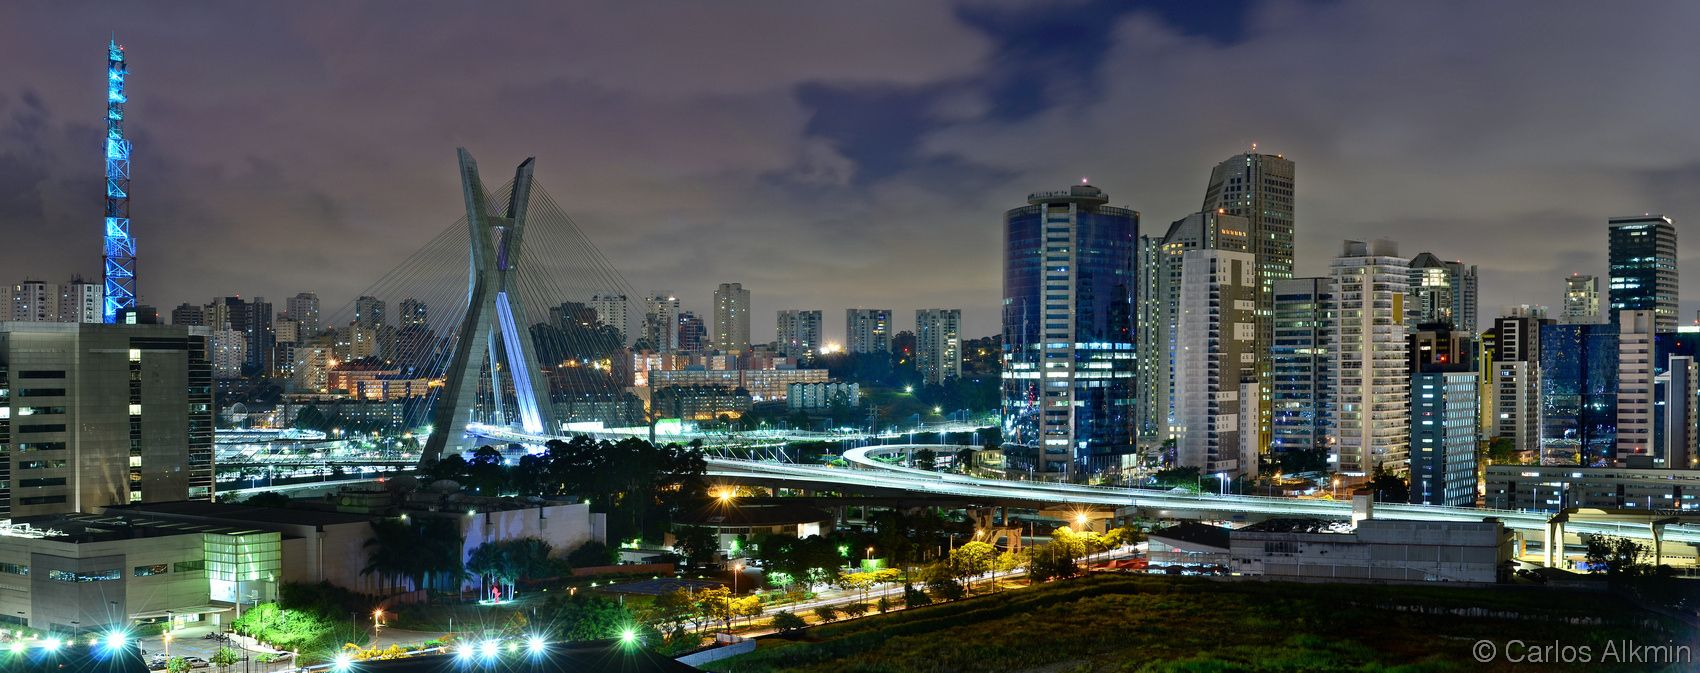 """To purchase prints and license, please contact me: carlos.alk@uol.com.br. Description: Sao Paulo iconic skyline with cable-stayed bridge - Skyline of the modern part of Sao Paulo, Brazil - on the left side, Globo TV Sao Paulo headquarters and """"Octavio Frias de Oliveira"""" cable-stayed bridge - night view. On the right side, some of the modern corporate buildings at Berrini avenue region / Brooklin Novo district.  All rights reserved © 2016 www.CarlosAlkmin.com.br"""